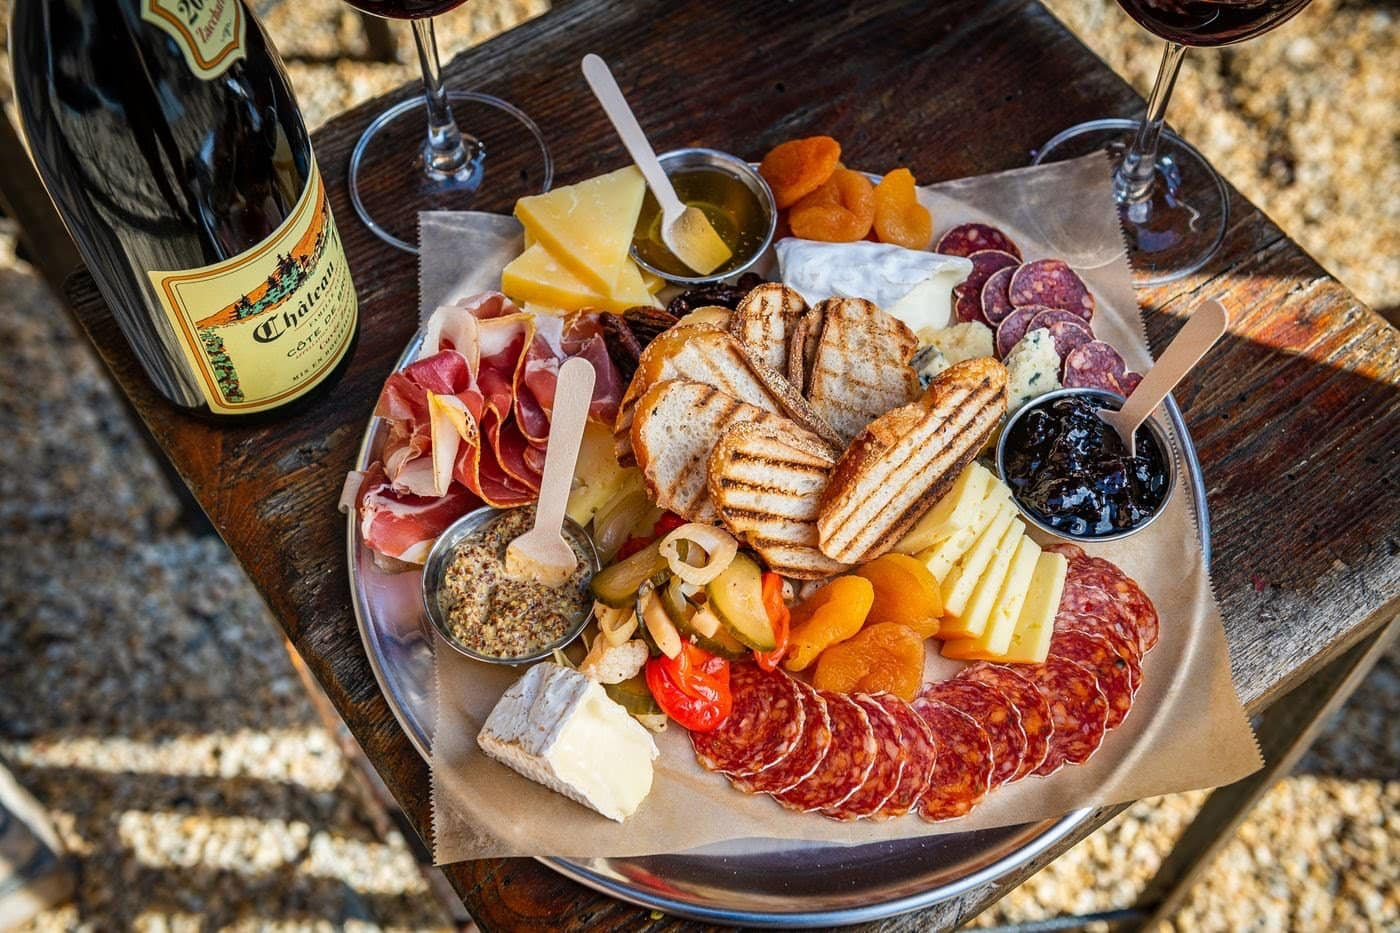 Charcuterie board with a bottle of wine